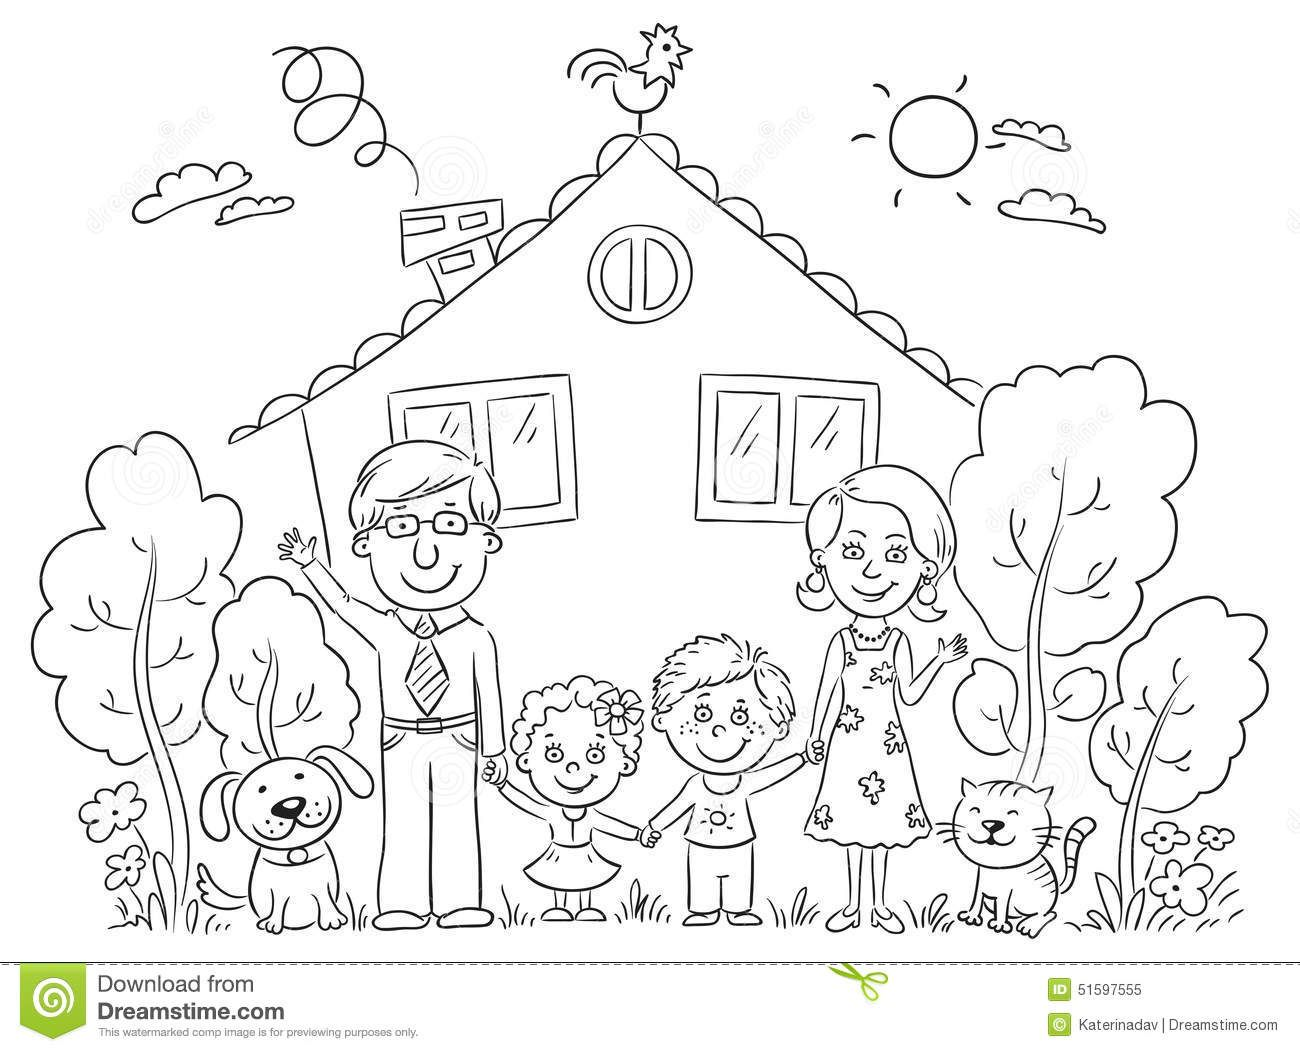 Free Clipart Picture Of My House And Family Black And White Outlines Google Search Family Clipart Family Cartoon Family Drawing